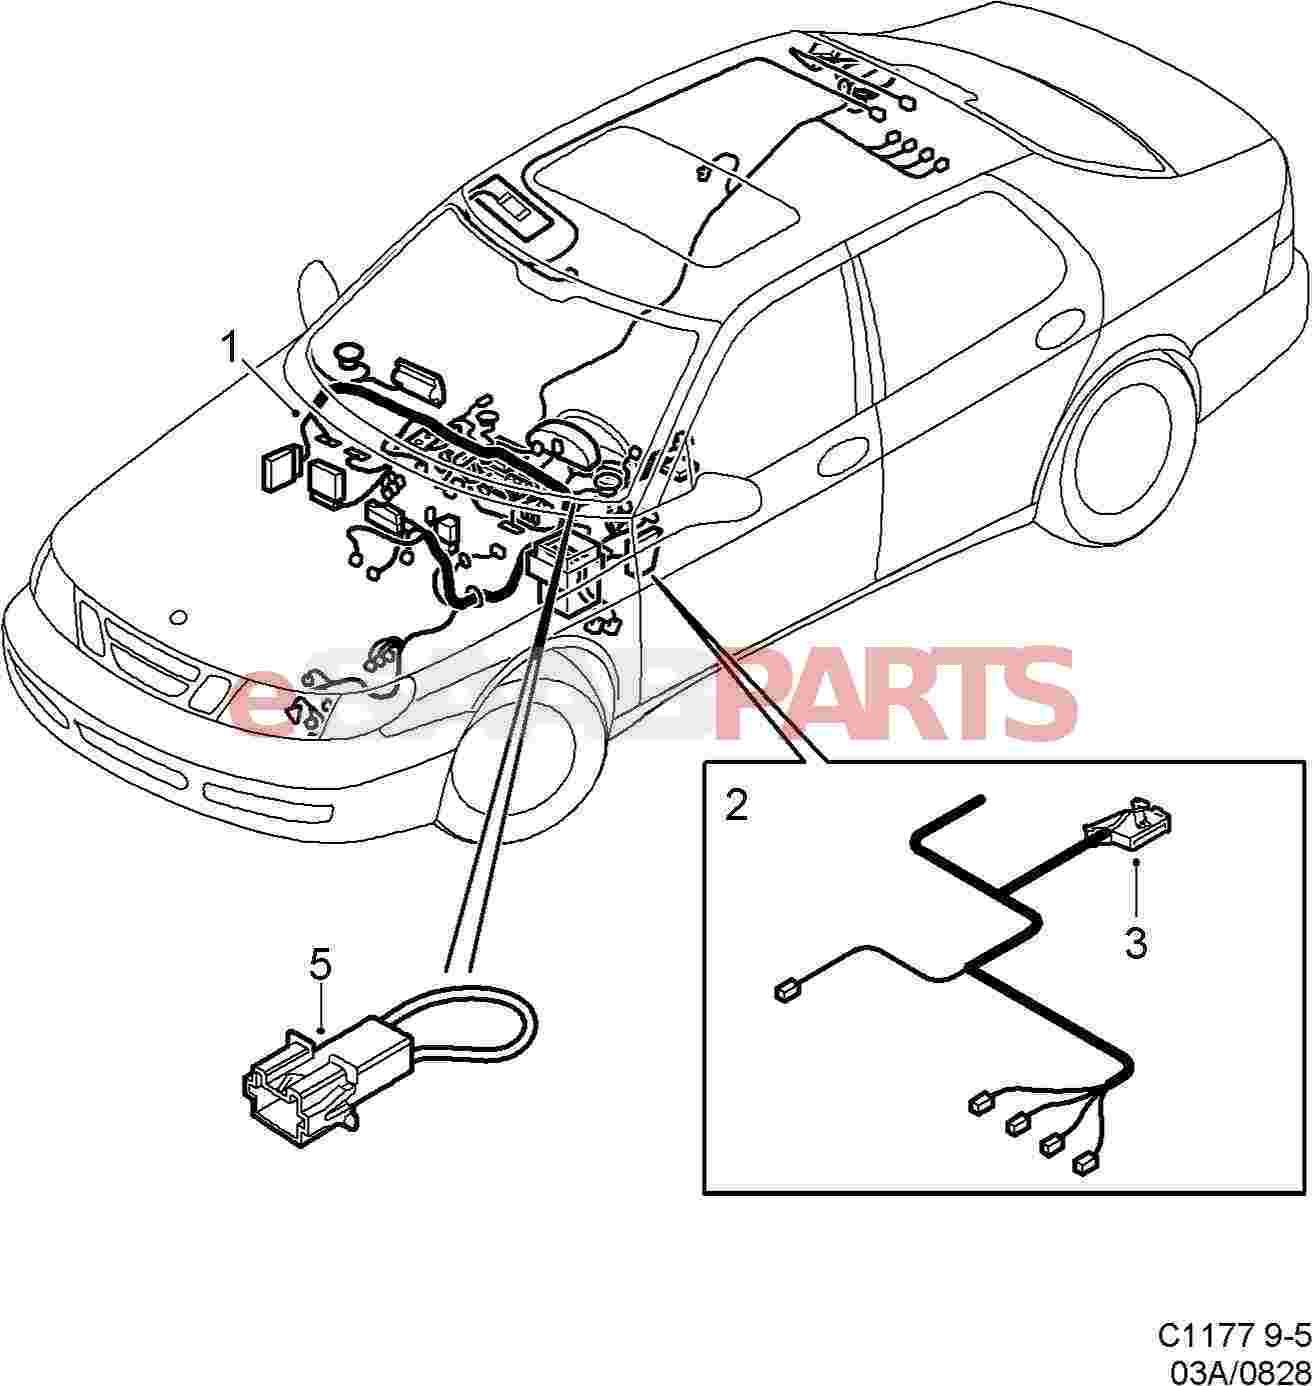 Esaabparts saab 9 5 9600 electrical parts wiring harness instrument panel · figure · car stereo wiring harness diagram